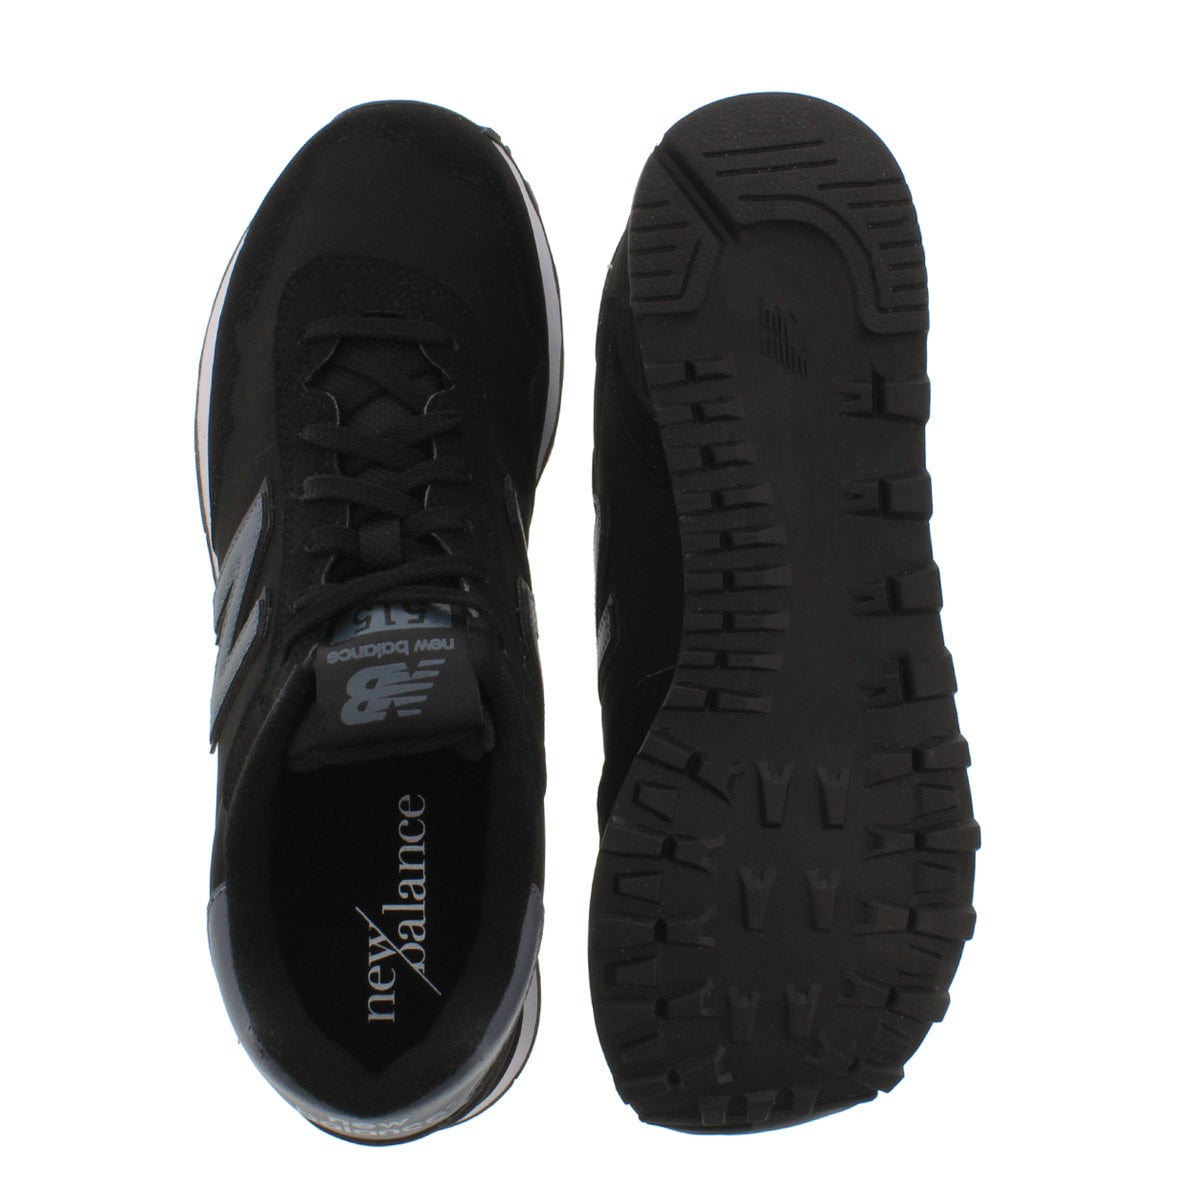 Mns 515 black lace up sneaker